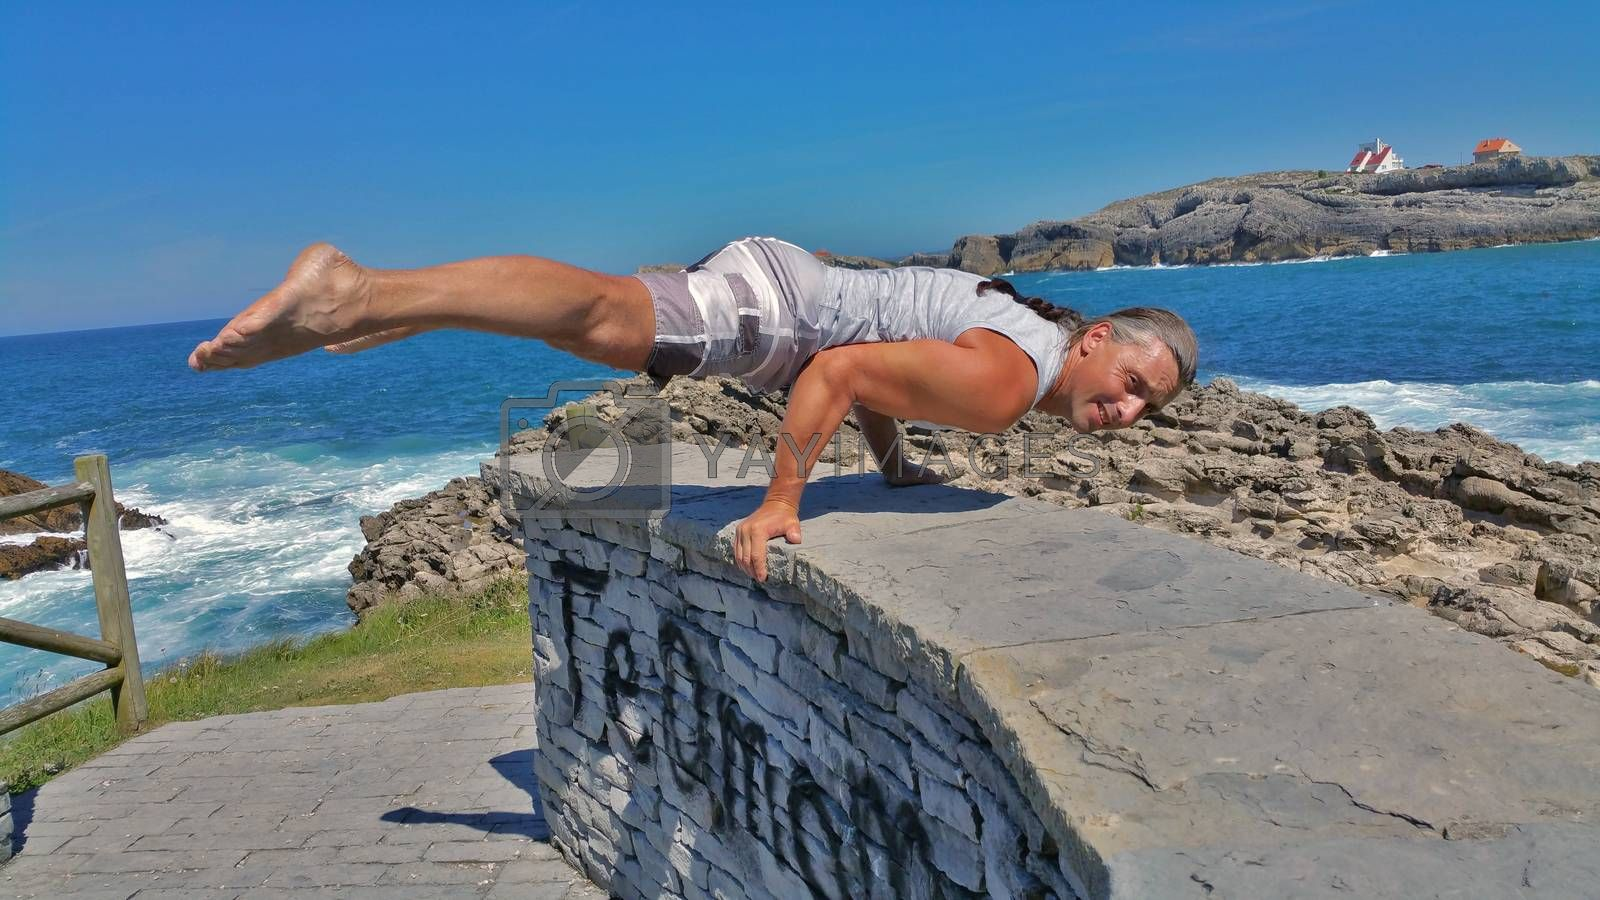 man in white shorts and white t-shirt does gymnastic exercise on a stone wall against a blue sea by zakob337